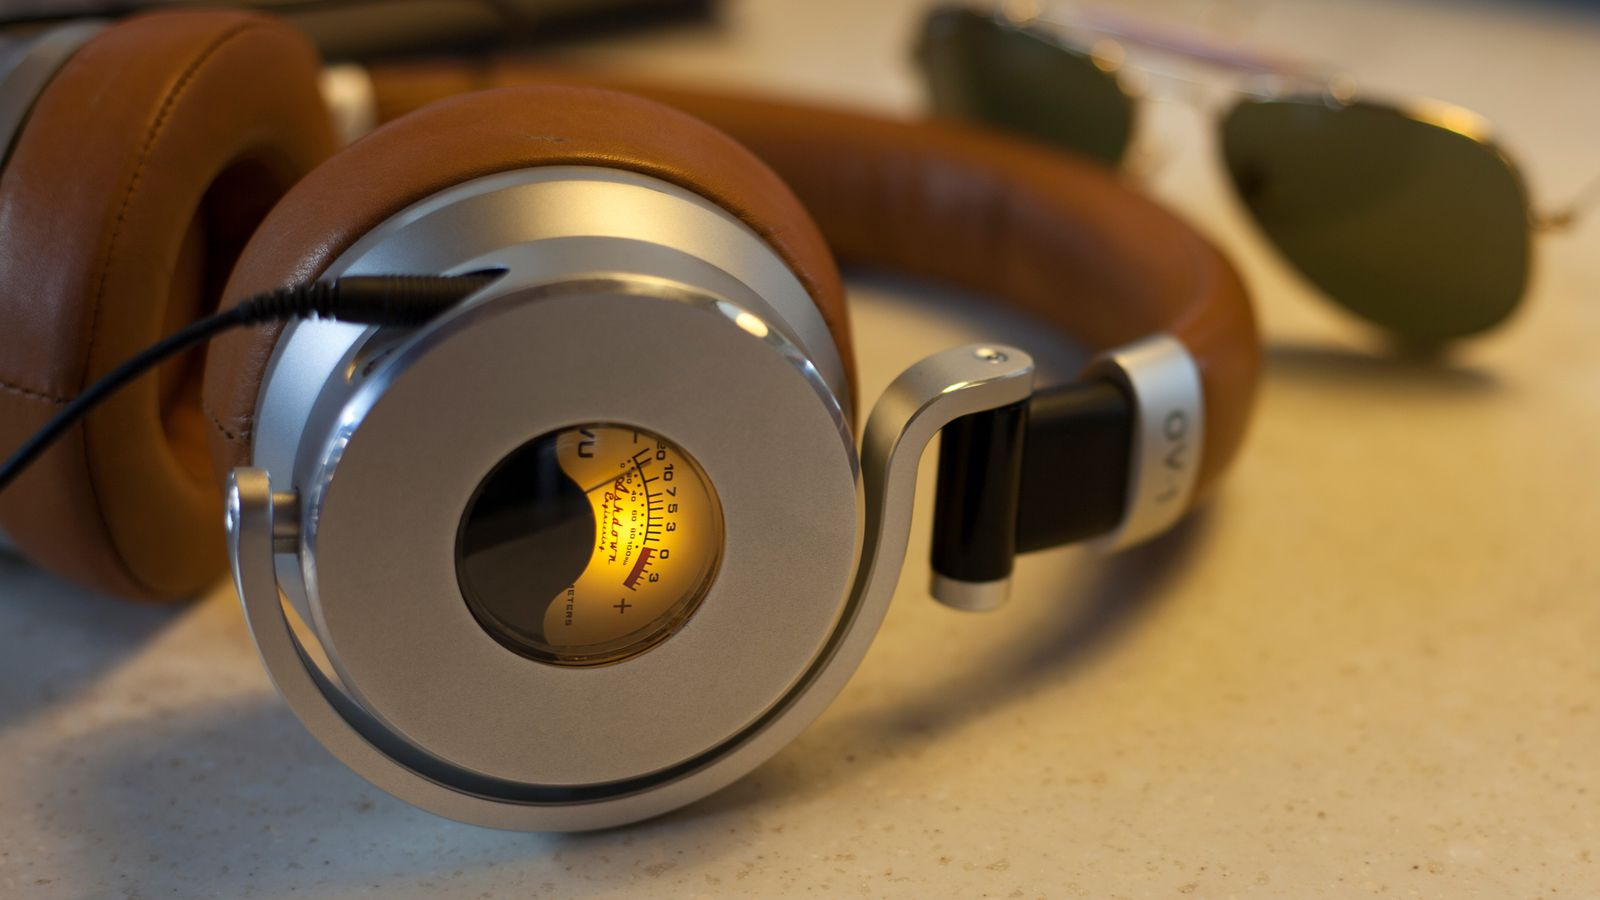 These headphones have a built-in VU meter, and I'm not even mad